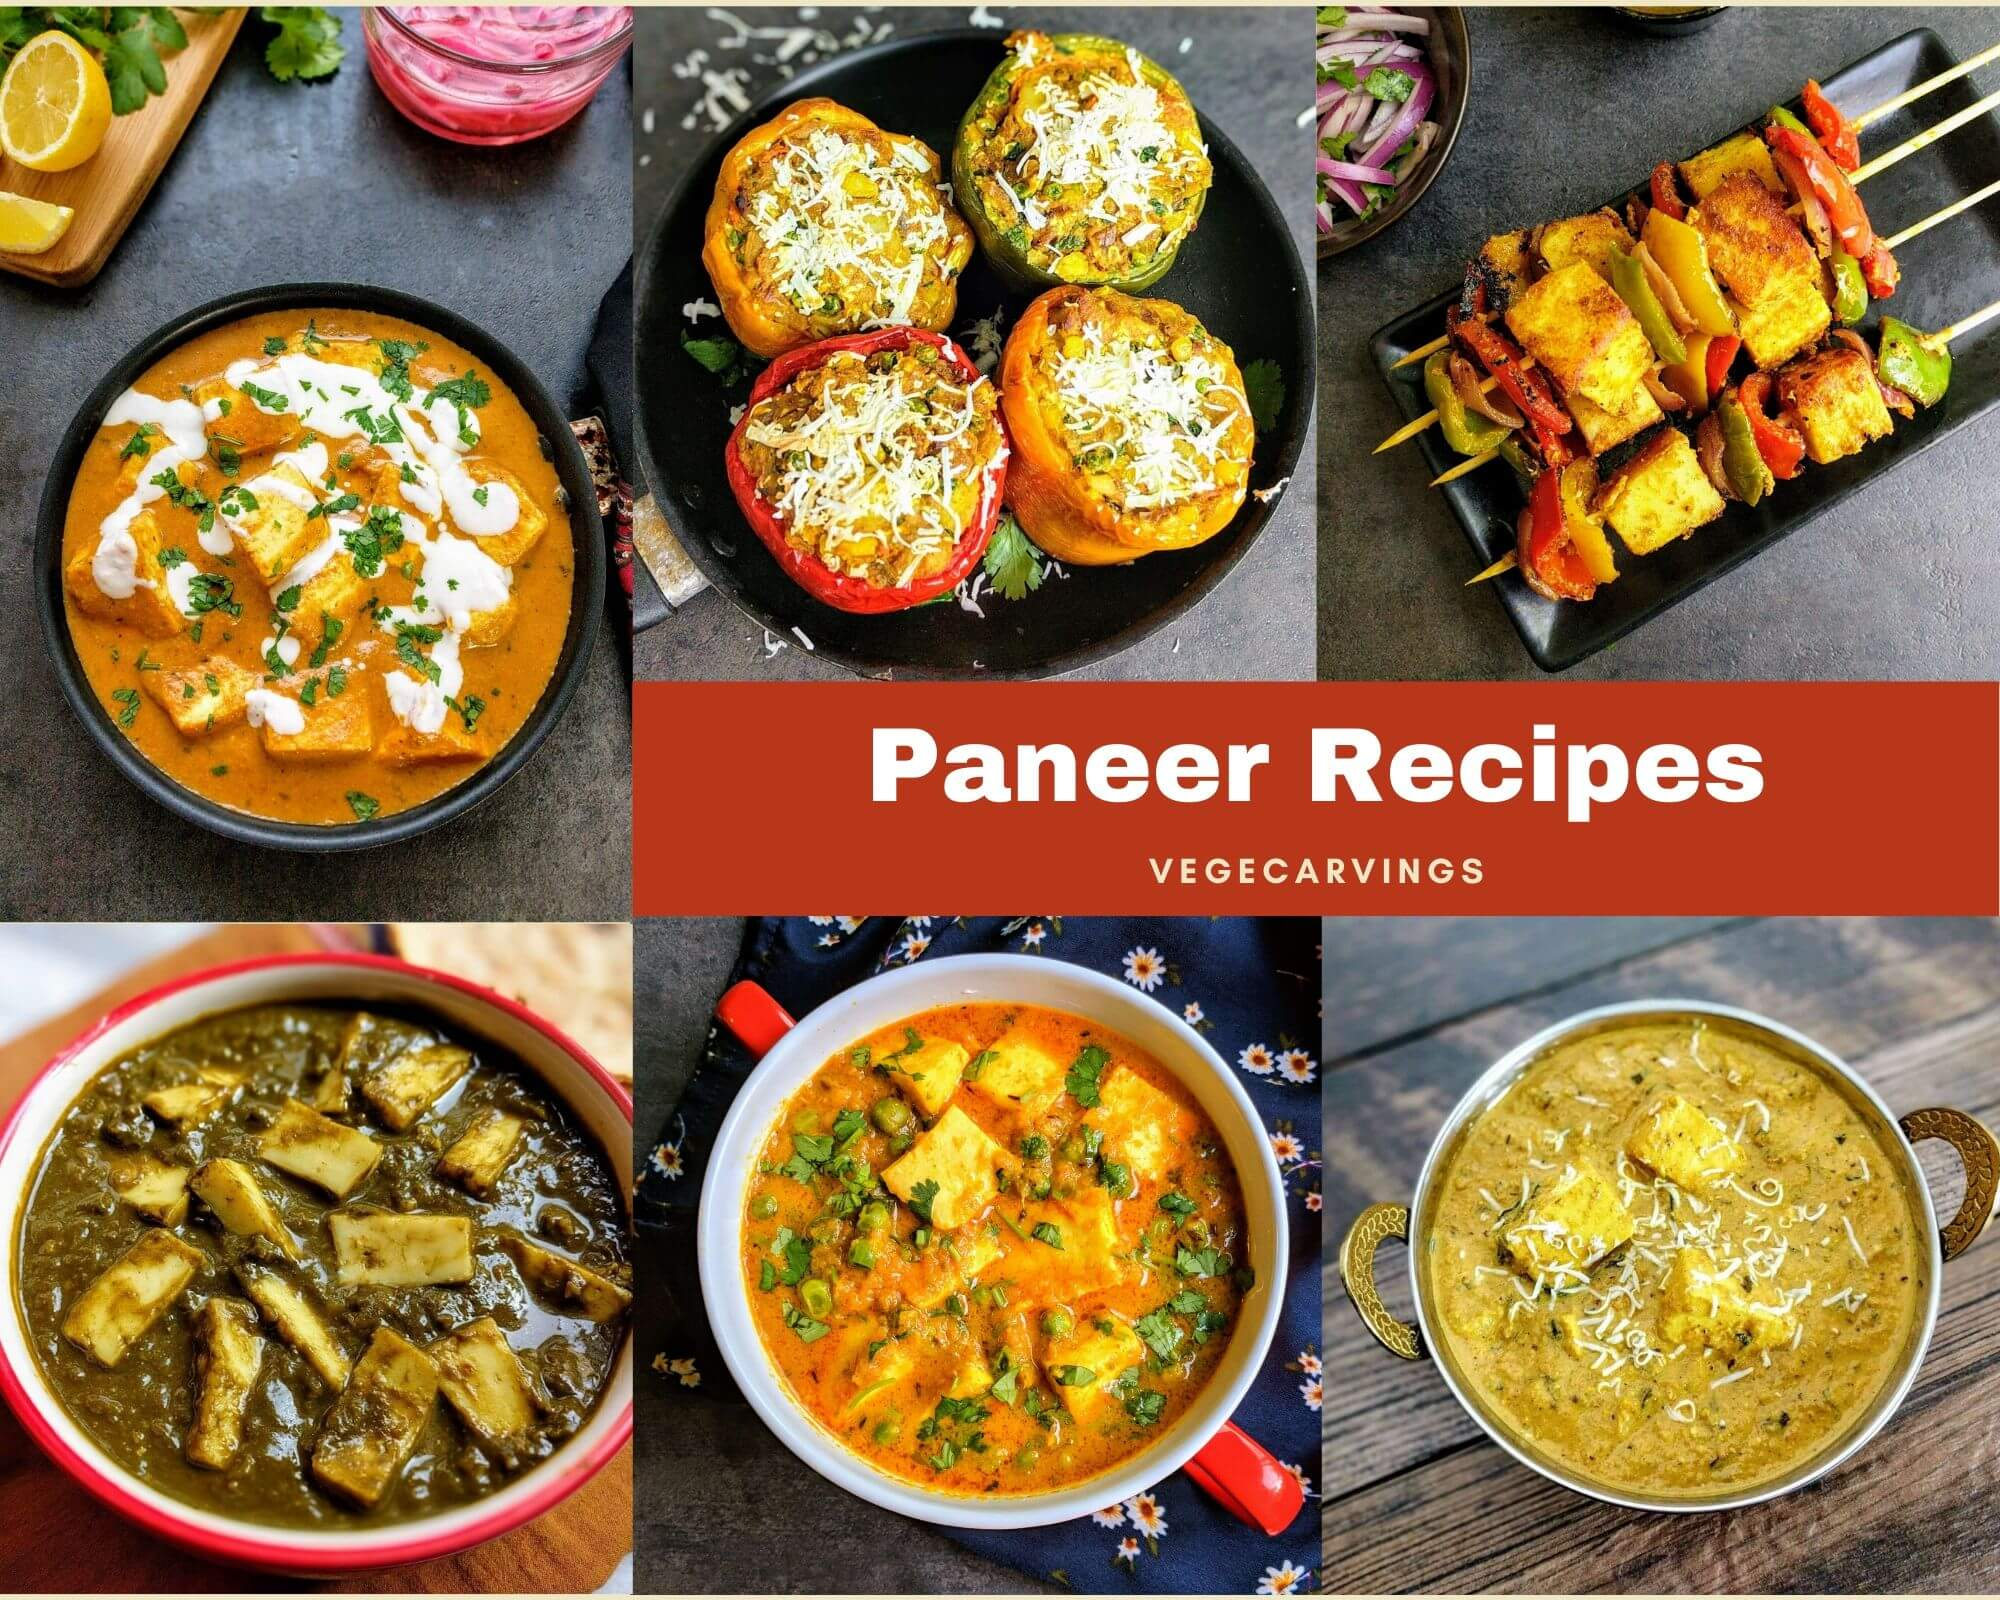 Paneer is an integral part of Indian cooking, be it curries, snacks or desserts. See our list of simple and delicious Paneer Recipes.